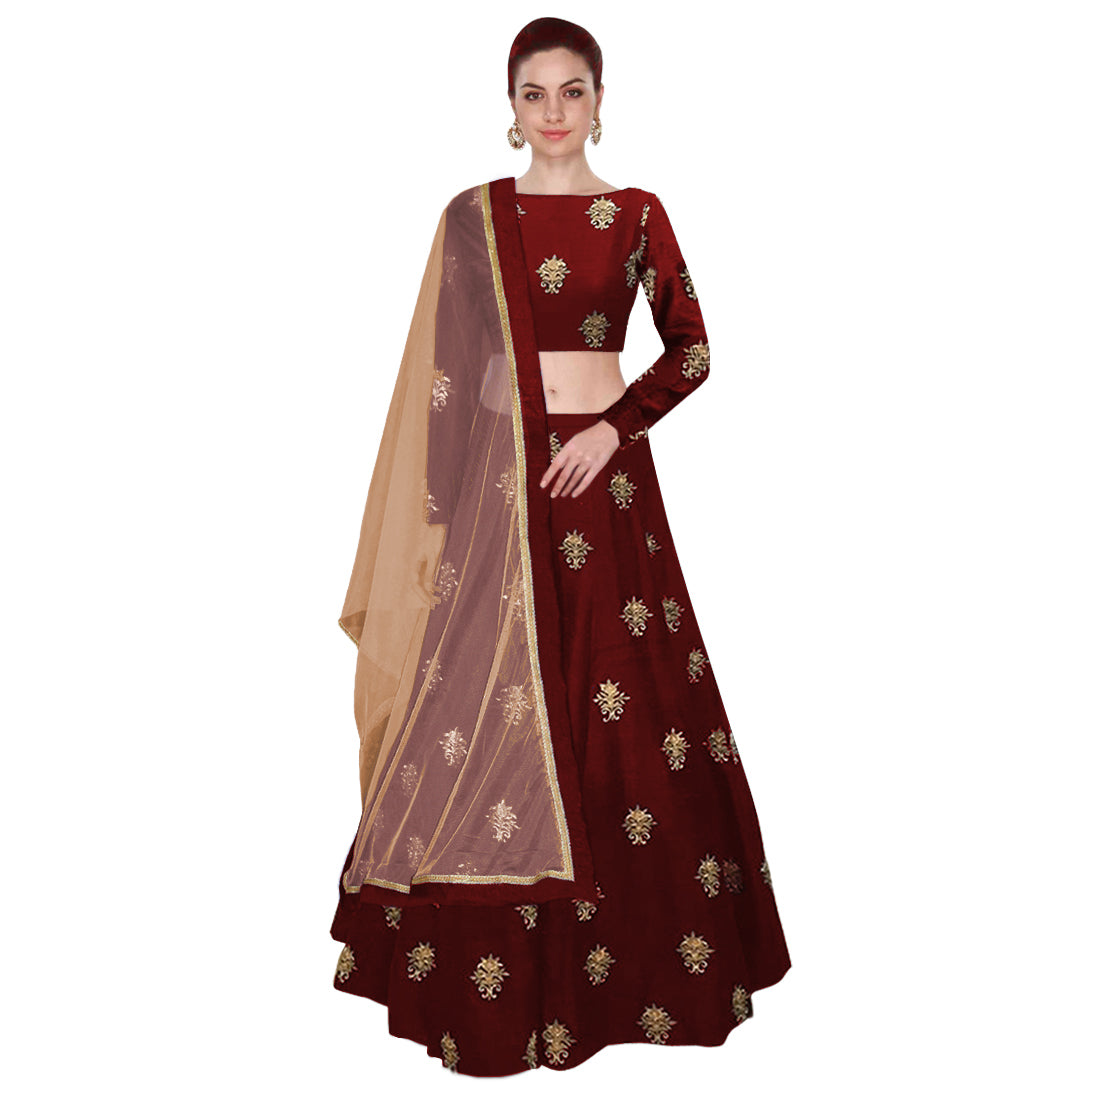 Maroon  Embroidered Bollywood Lehenga Blouse Online Shopping